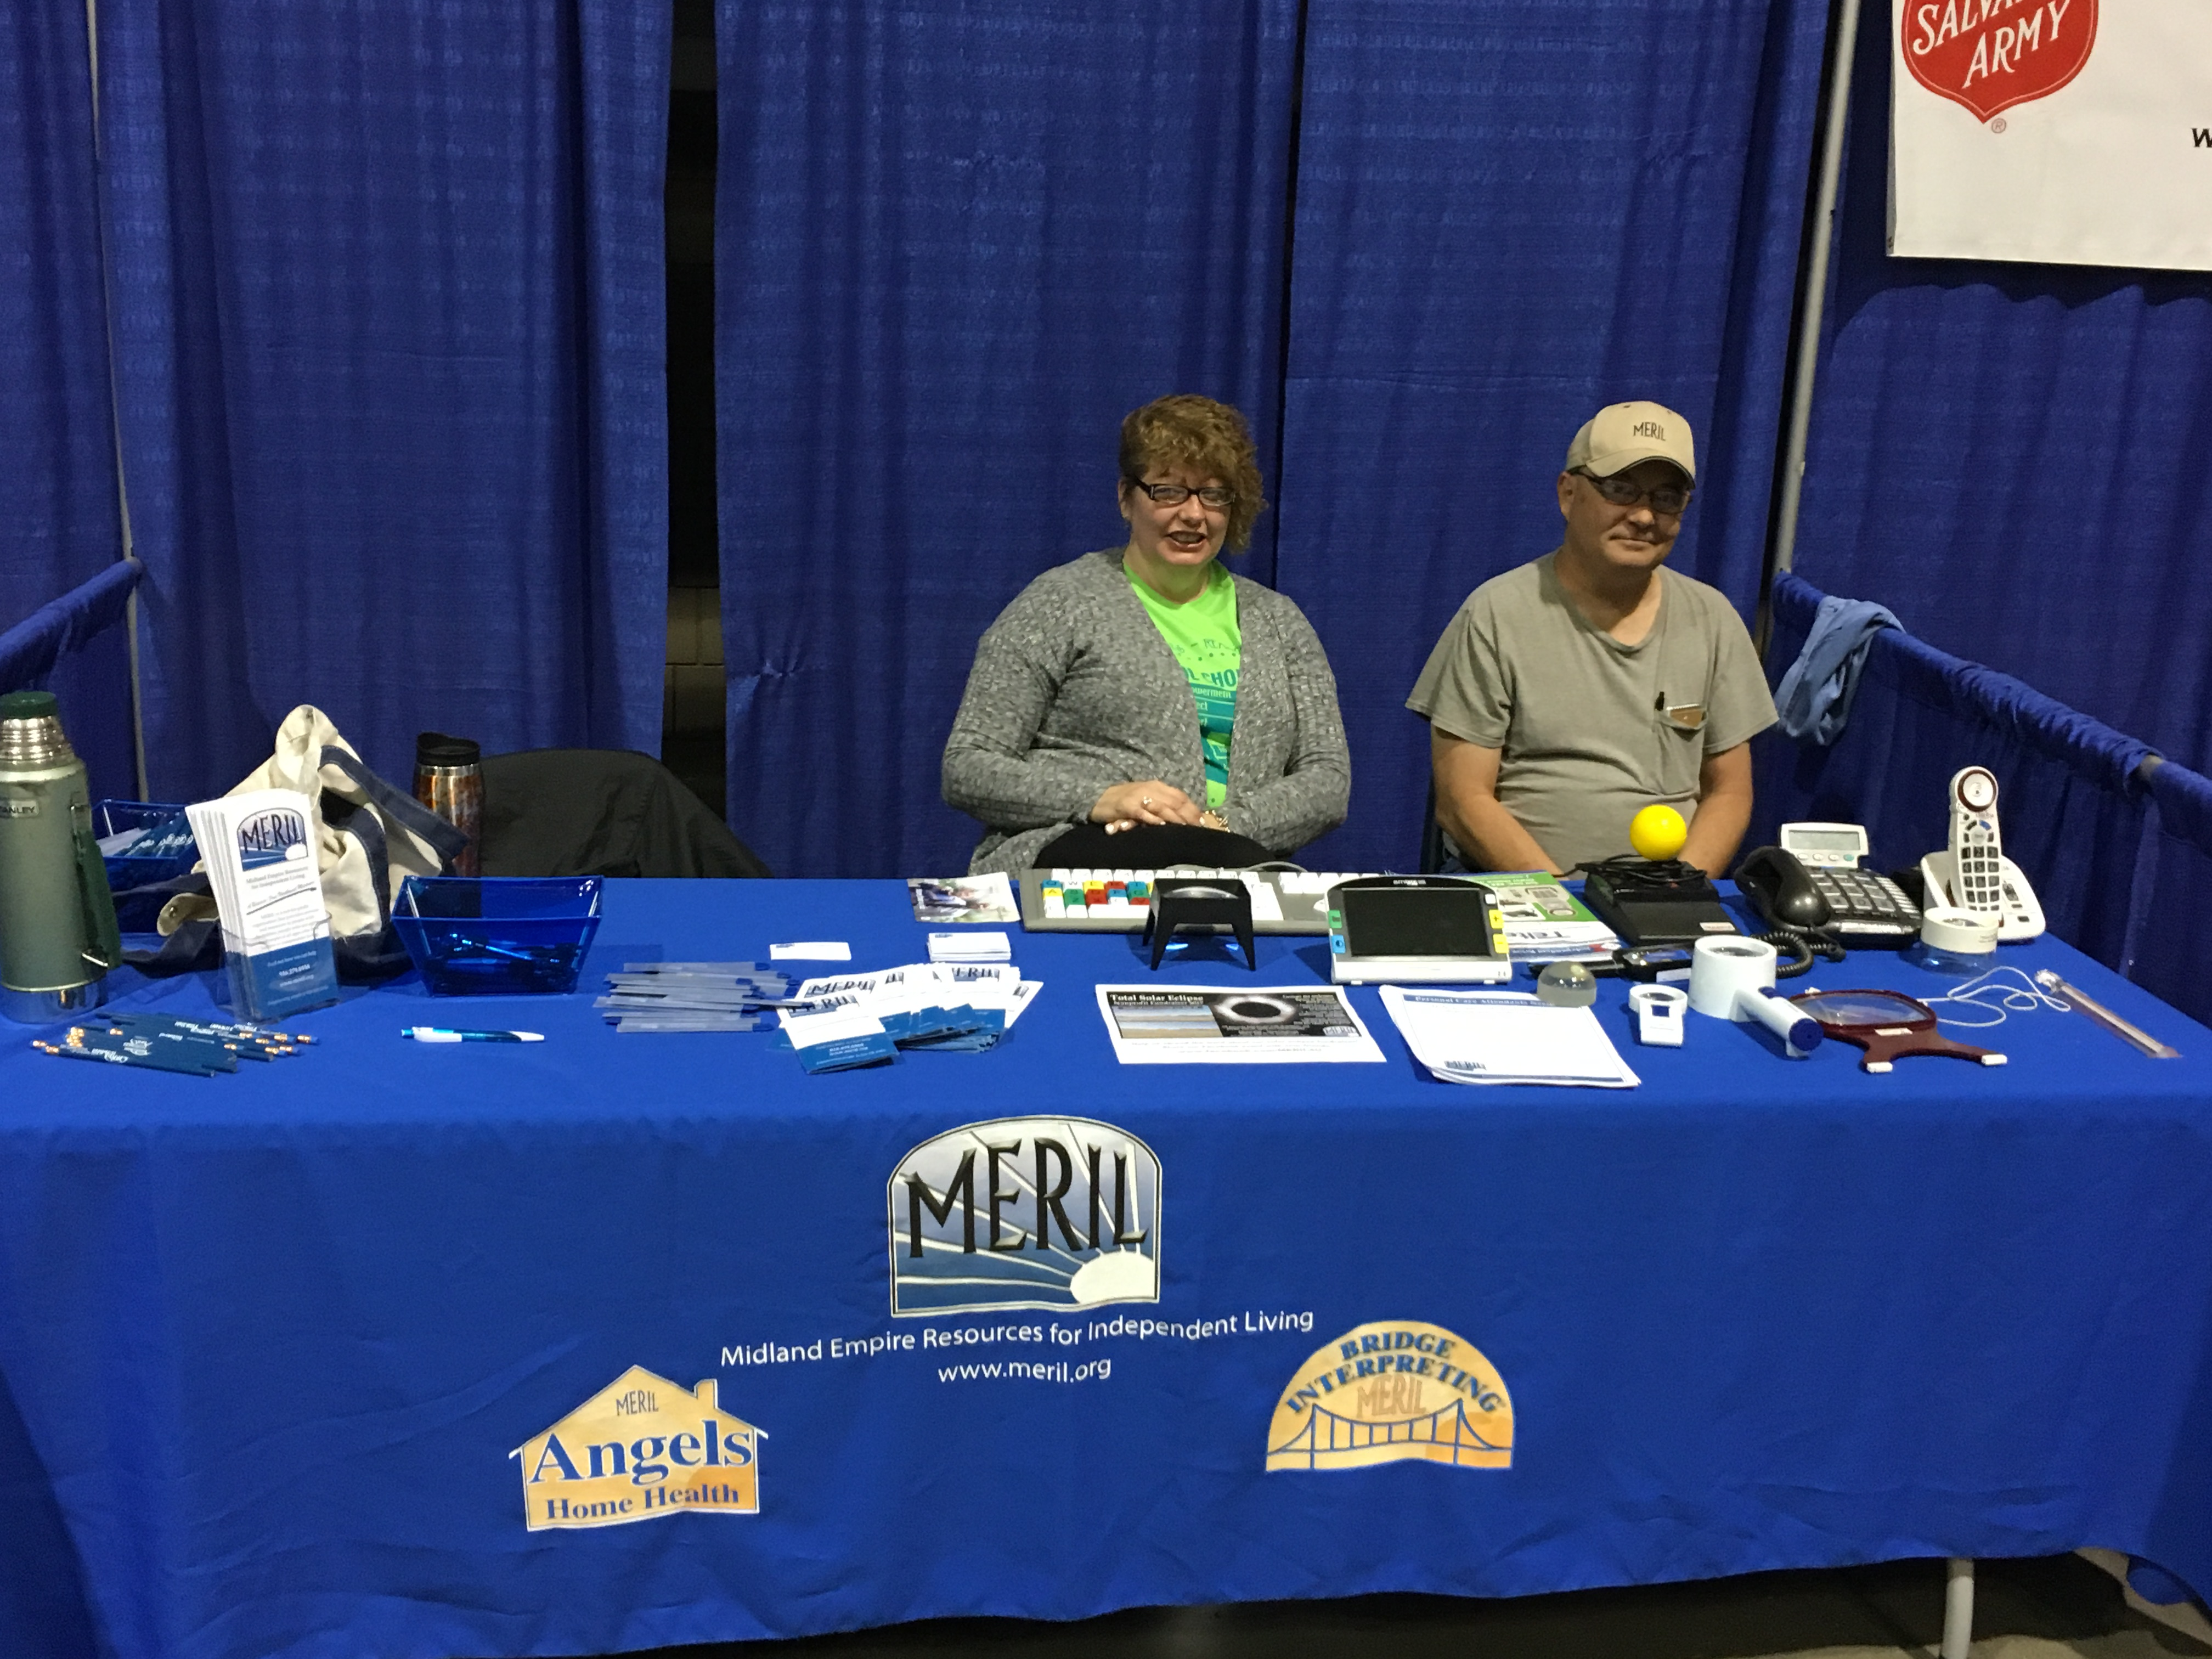 Lisa and Paul at our booth during the Vet 2 Vet event at the Civic Arena. Let's all make sure that veterans with disabilities get the resources they need!